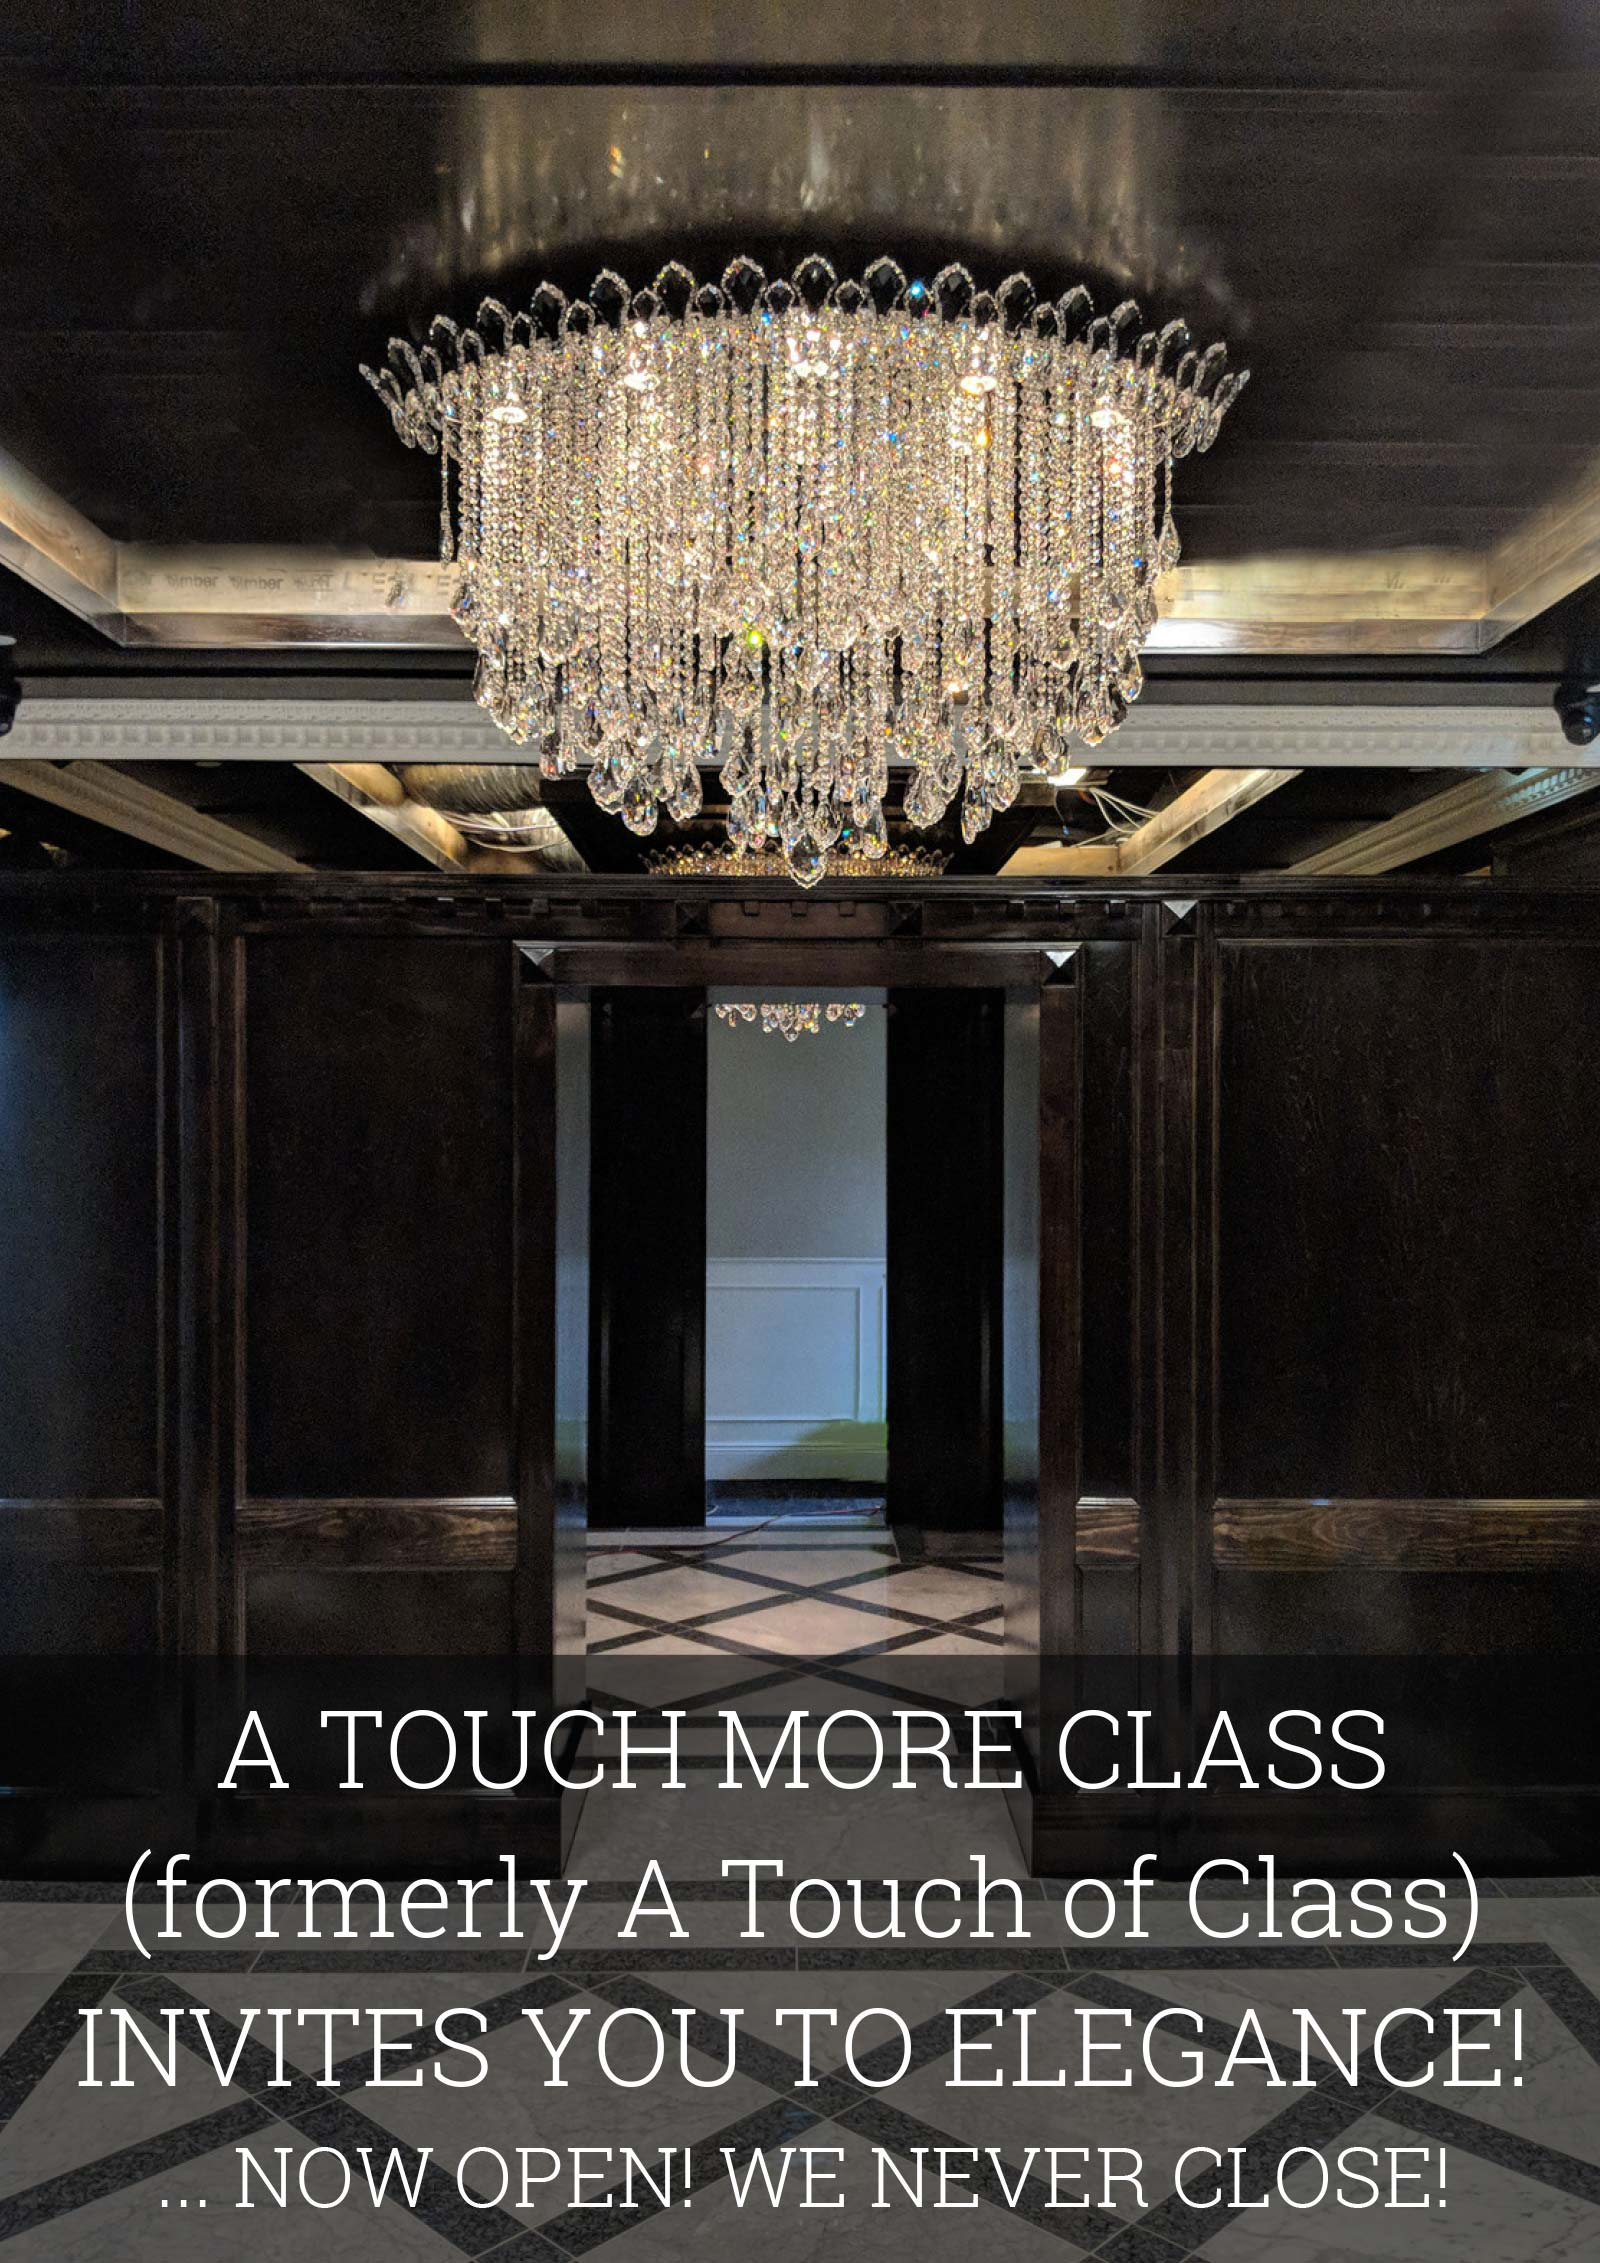 A Touch More Class (formerly A Touch of Class) Now Open!